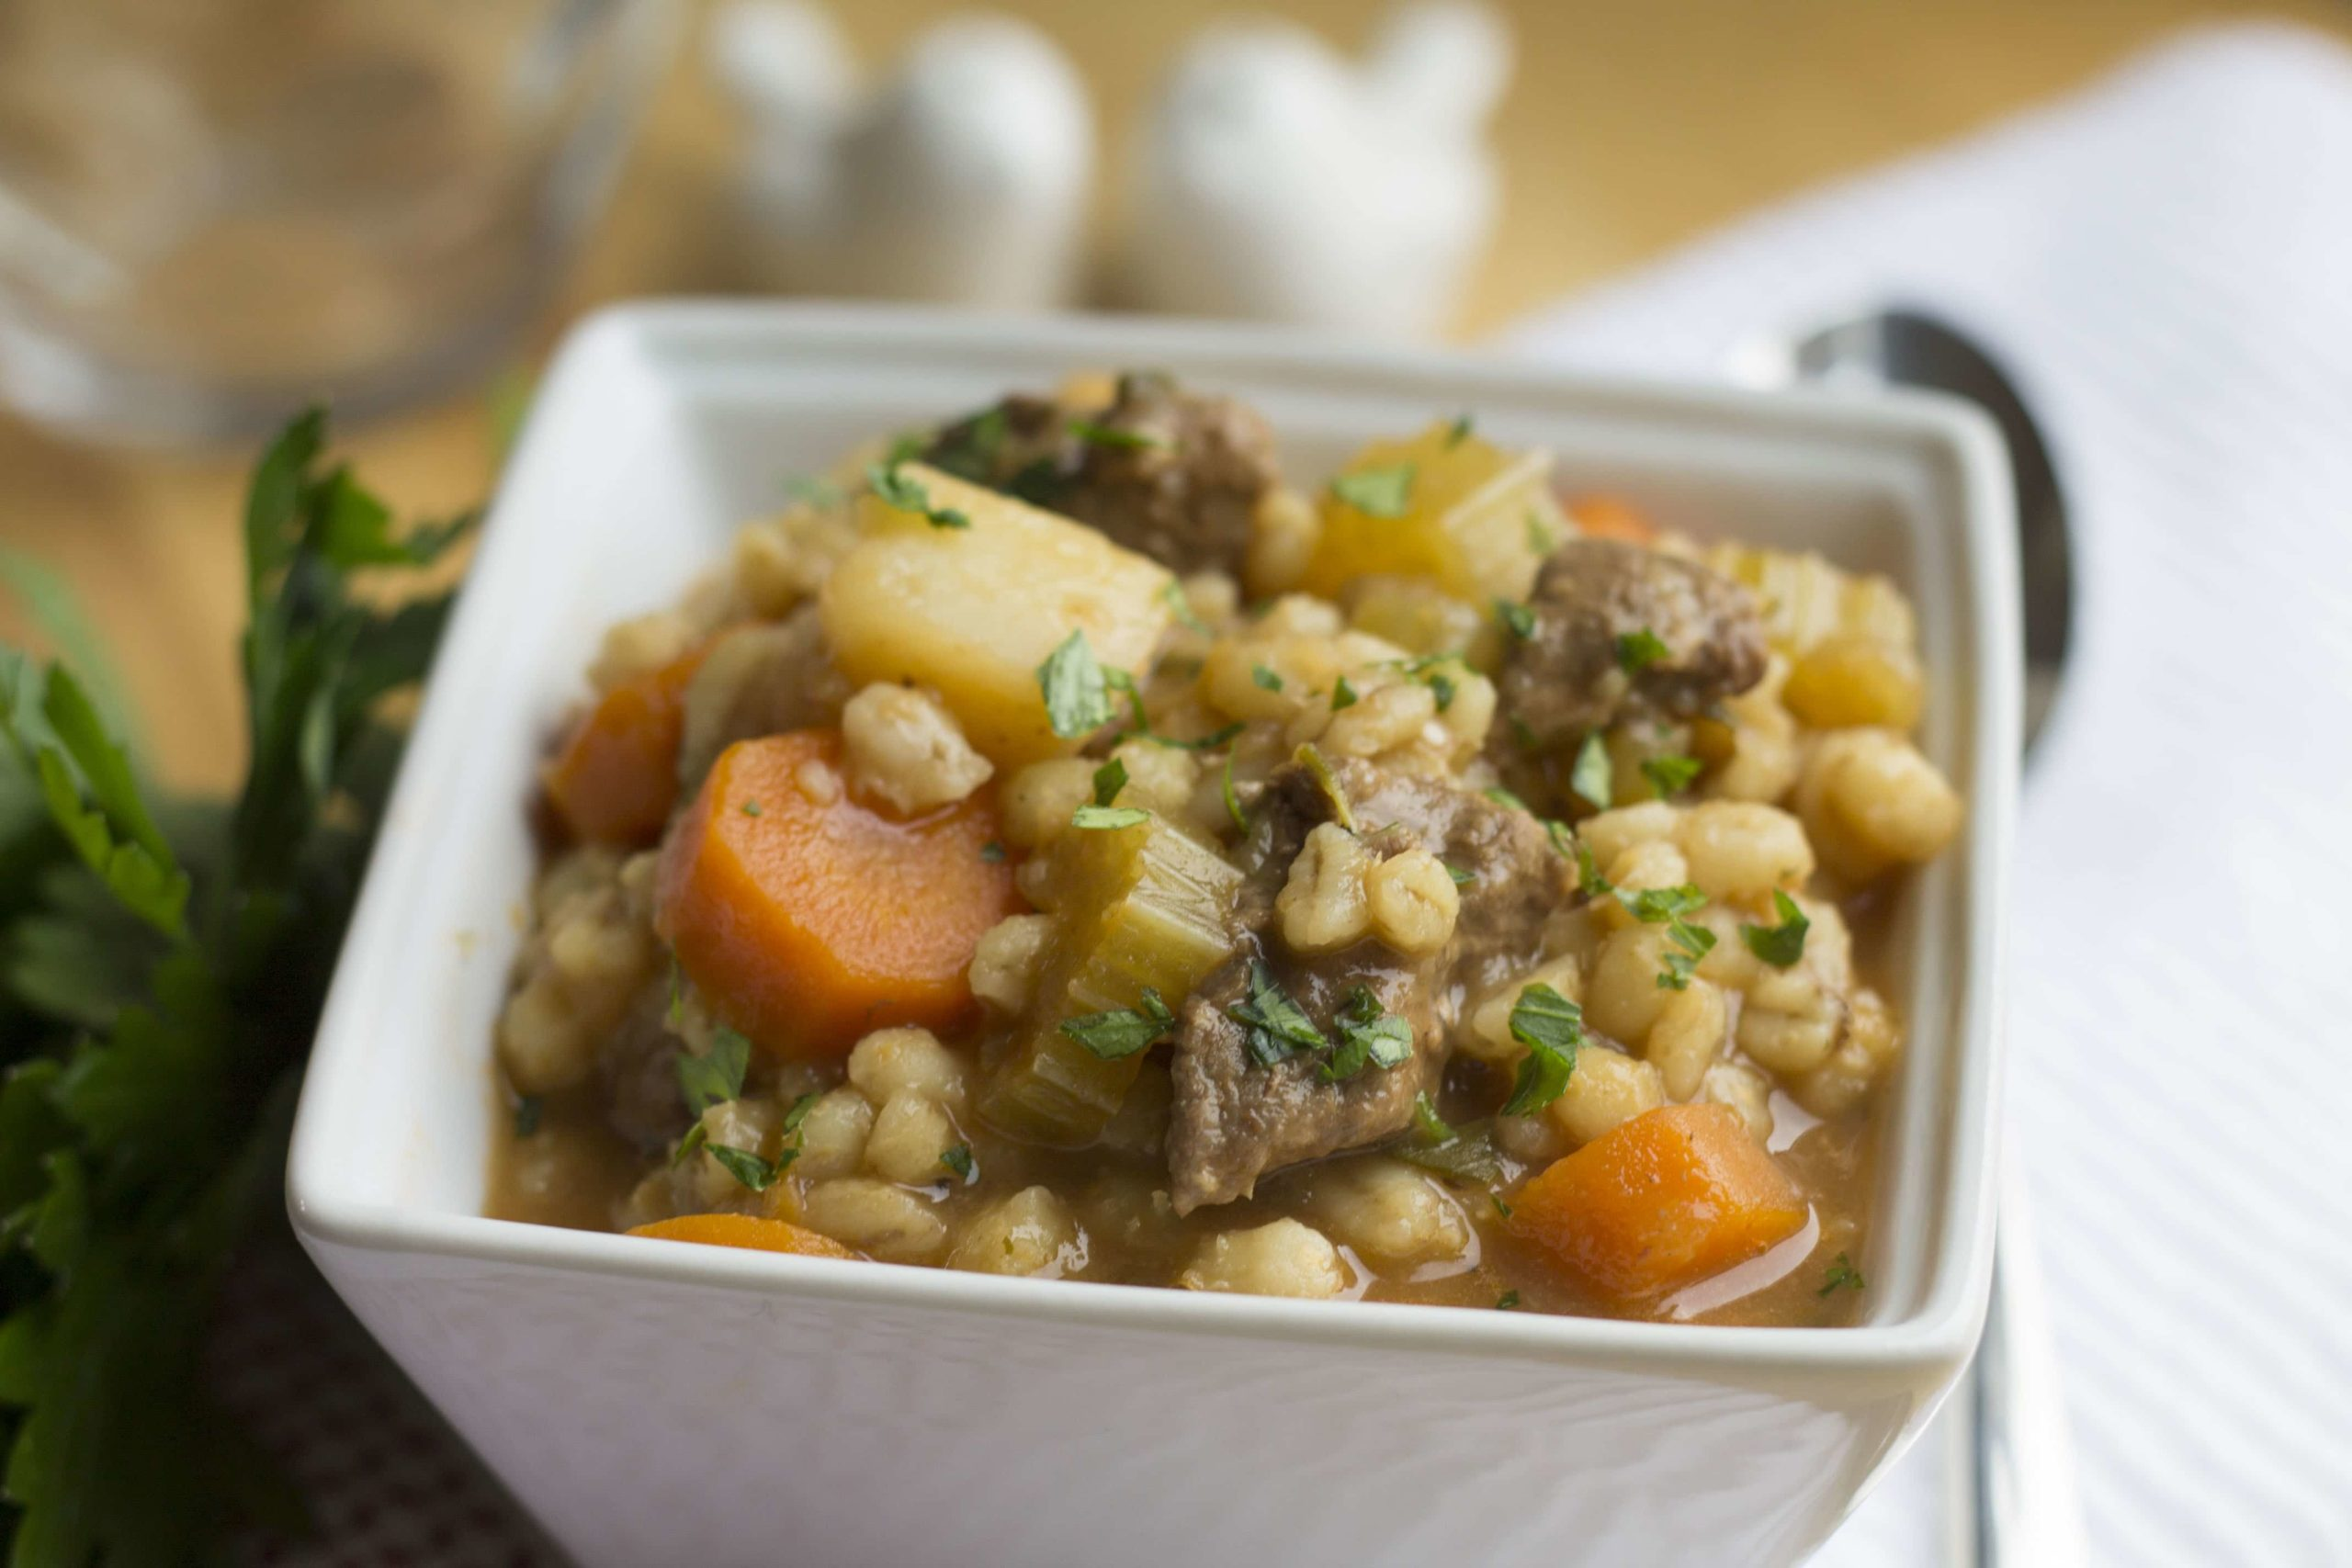 Beef & Barley Soup in a white square bowl with a spoon beside